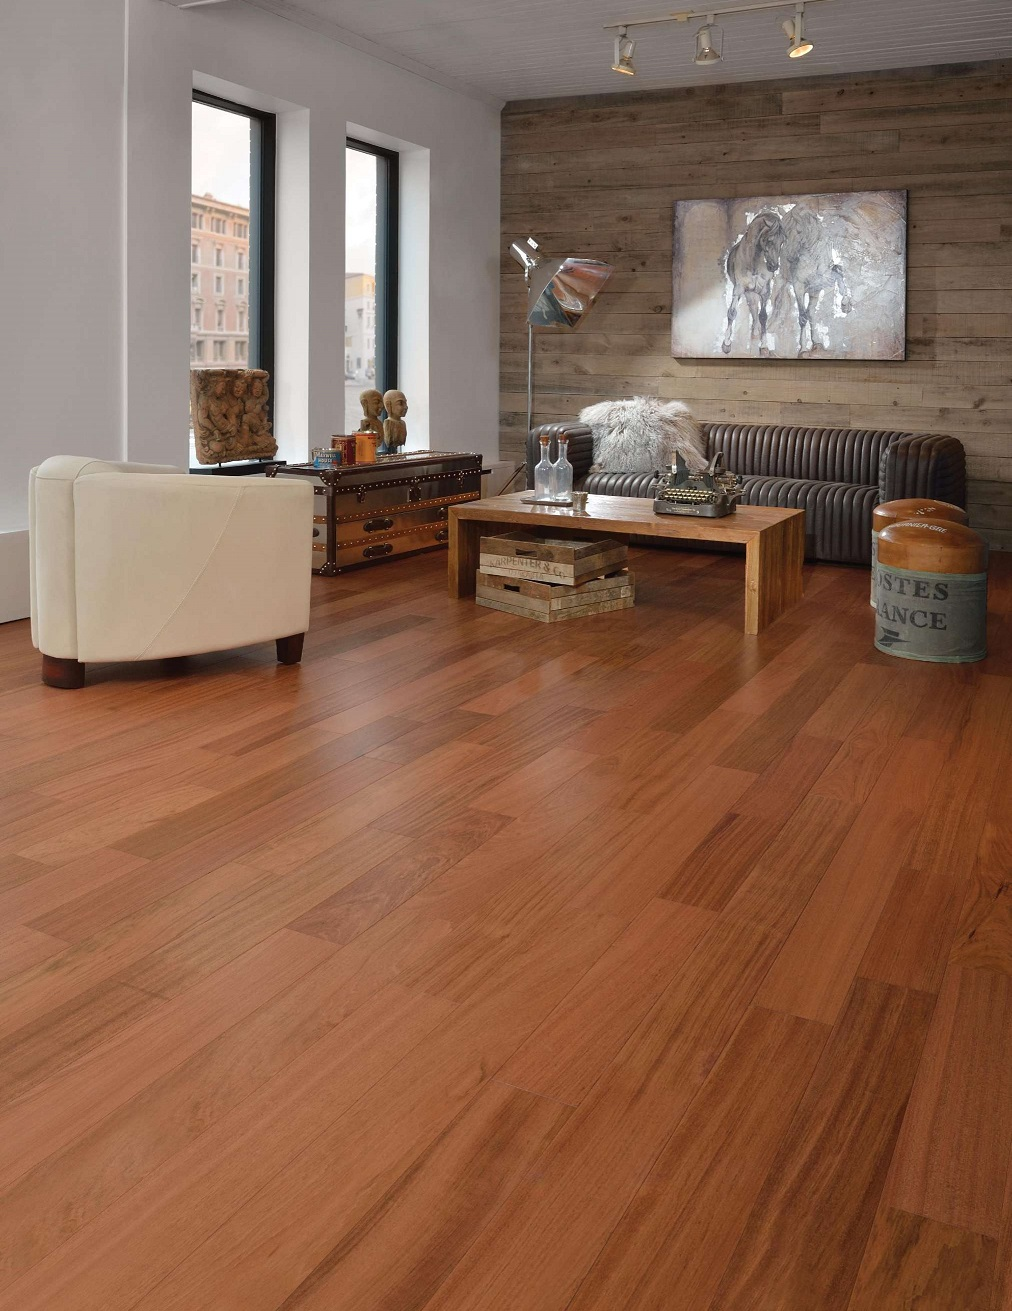 Mirage brazilian cherry engineered hardwood flooring 3 5 16 for Mirage wood floors